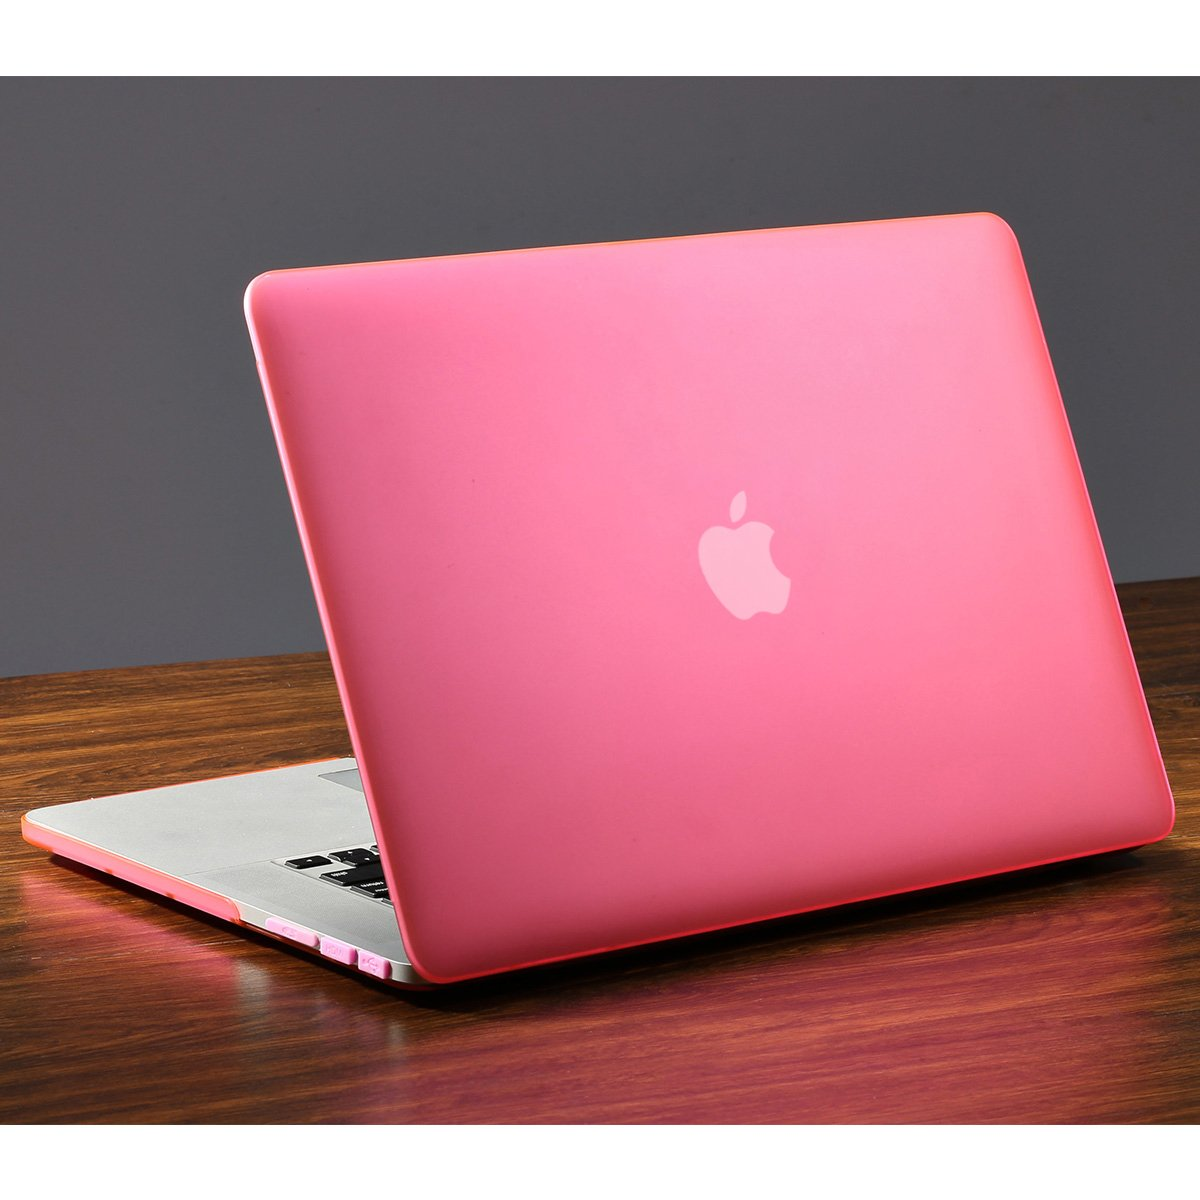 Matte Finish with Rubber Feet Model A1398 Retina, 15 inch, Mid 2012 to Mid 2015 Rose Quartz lention Hard Case with Dust Plug for MacBook Pro